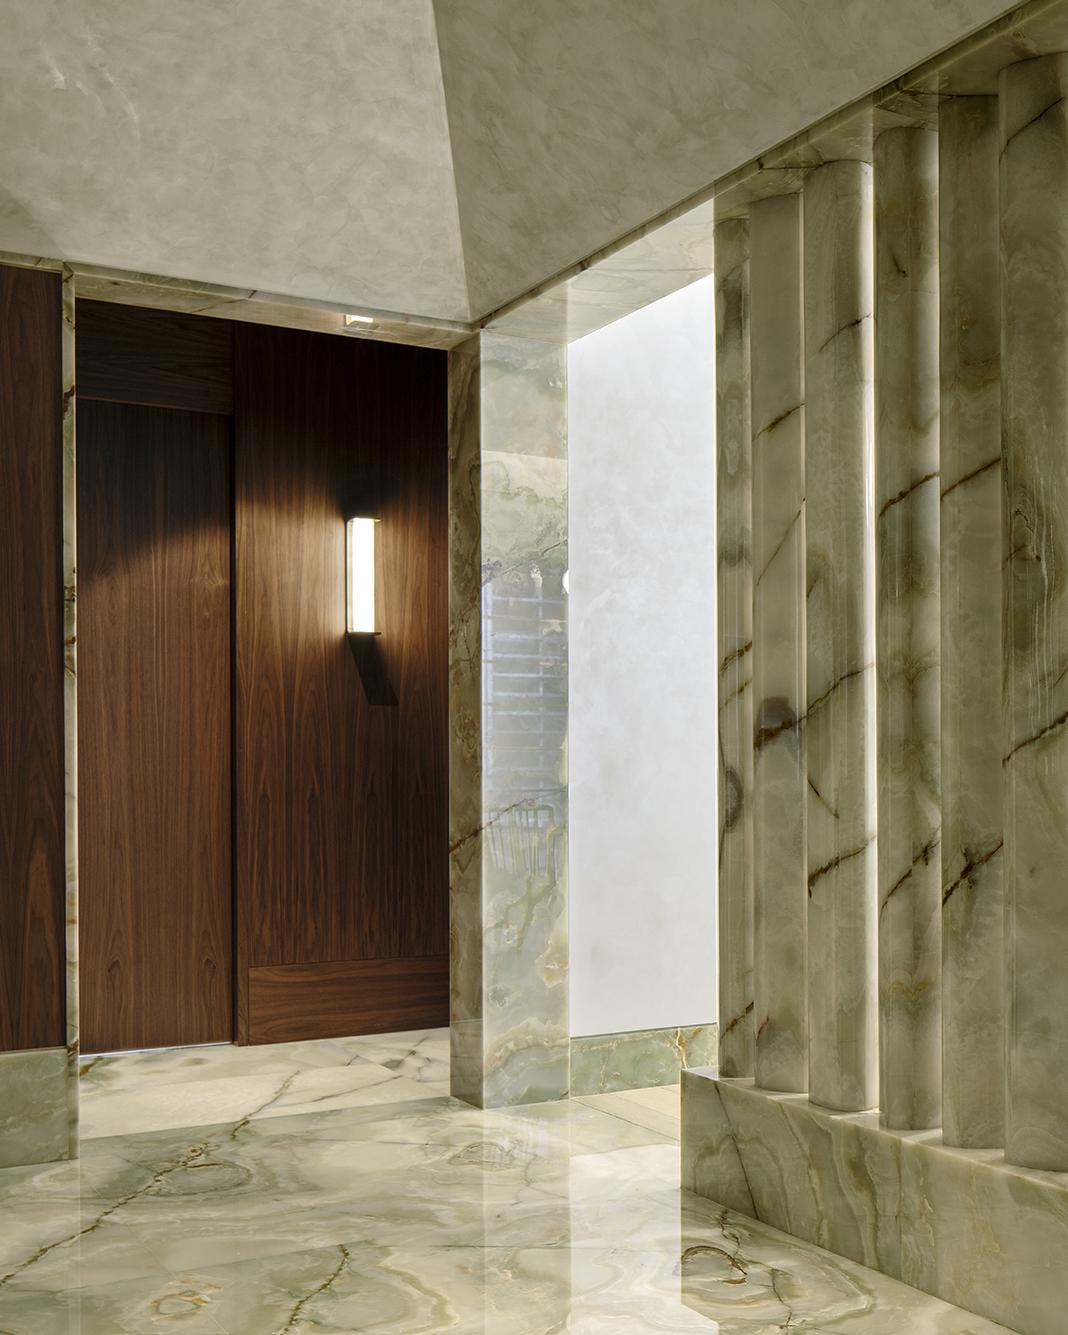 marble interiors with colonnade at Brewin apartment by Robert Cheng